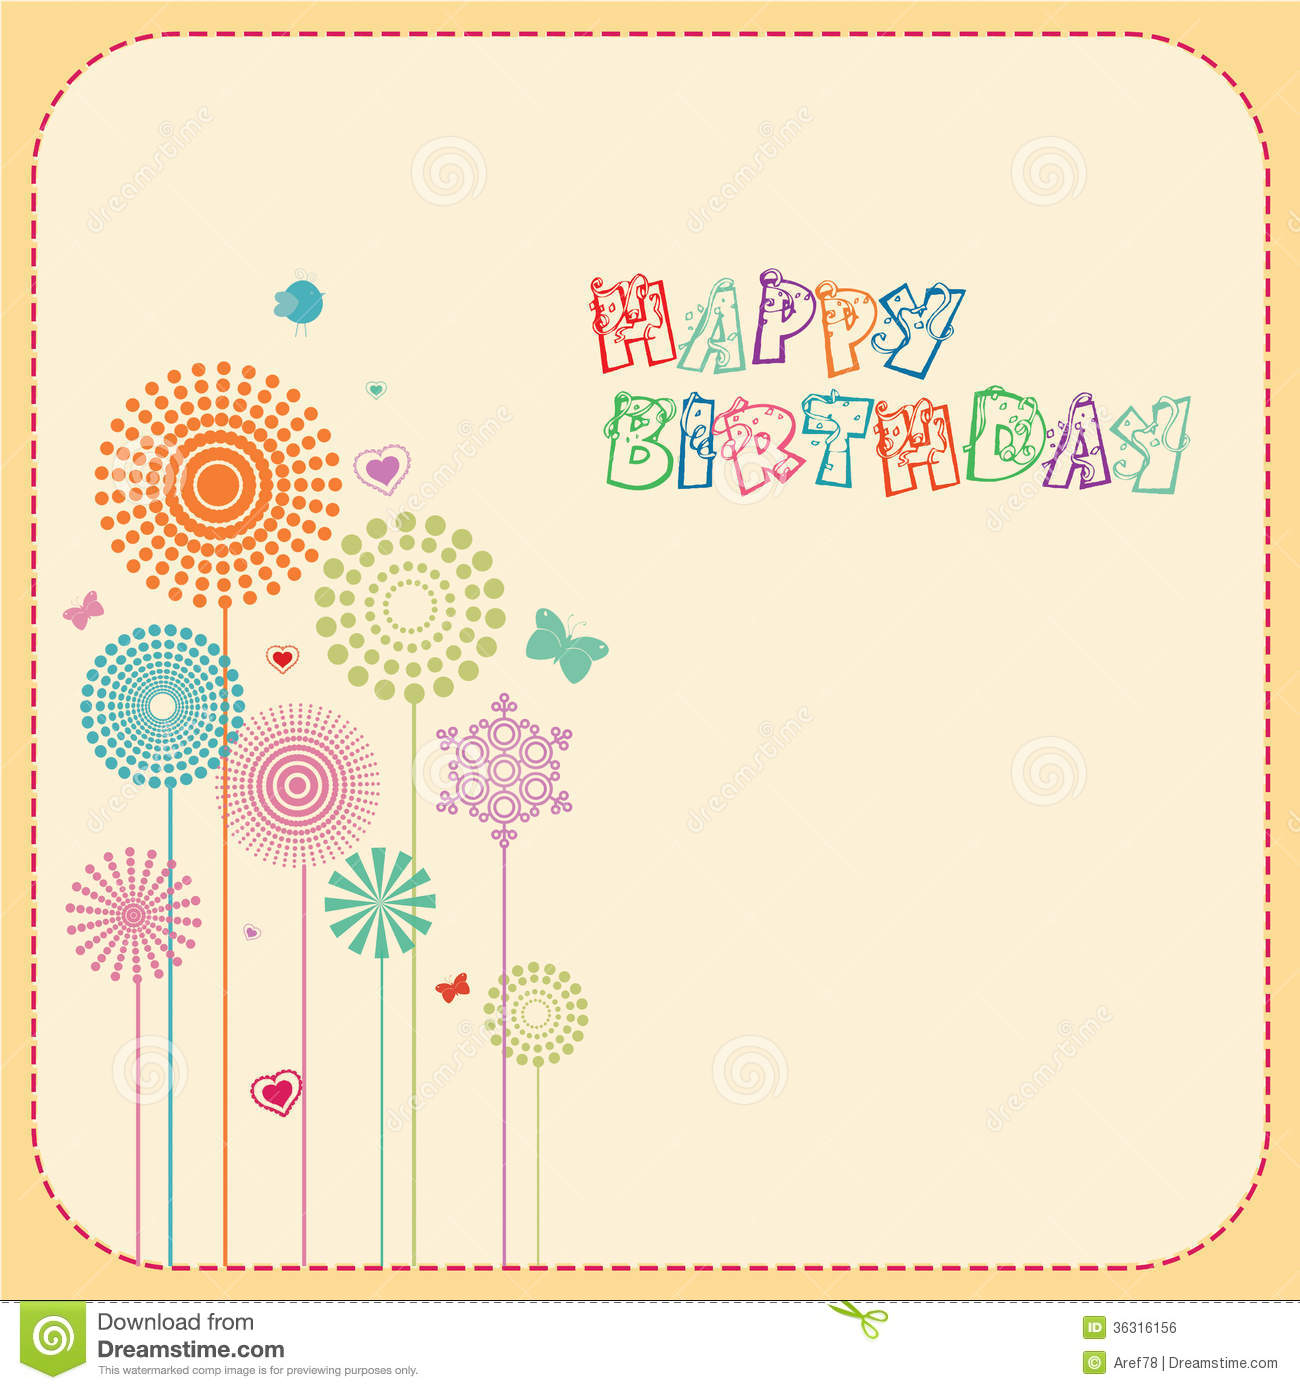 Happy birthday card stock illustration illustration of curve happy birthday card bookmarktalkfo Choice Image